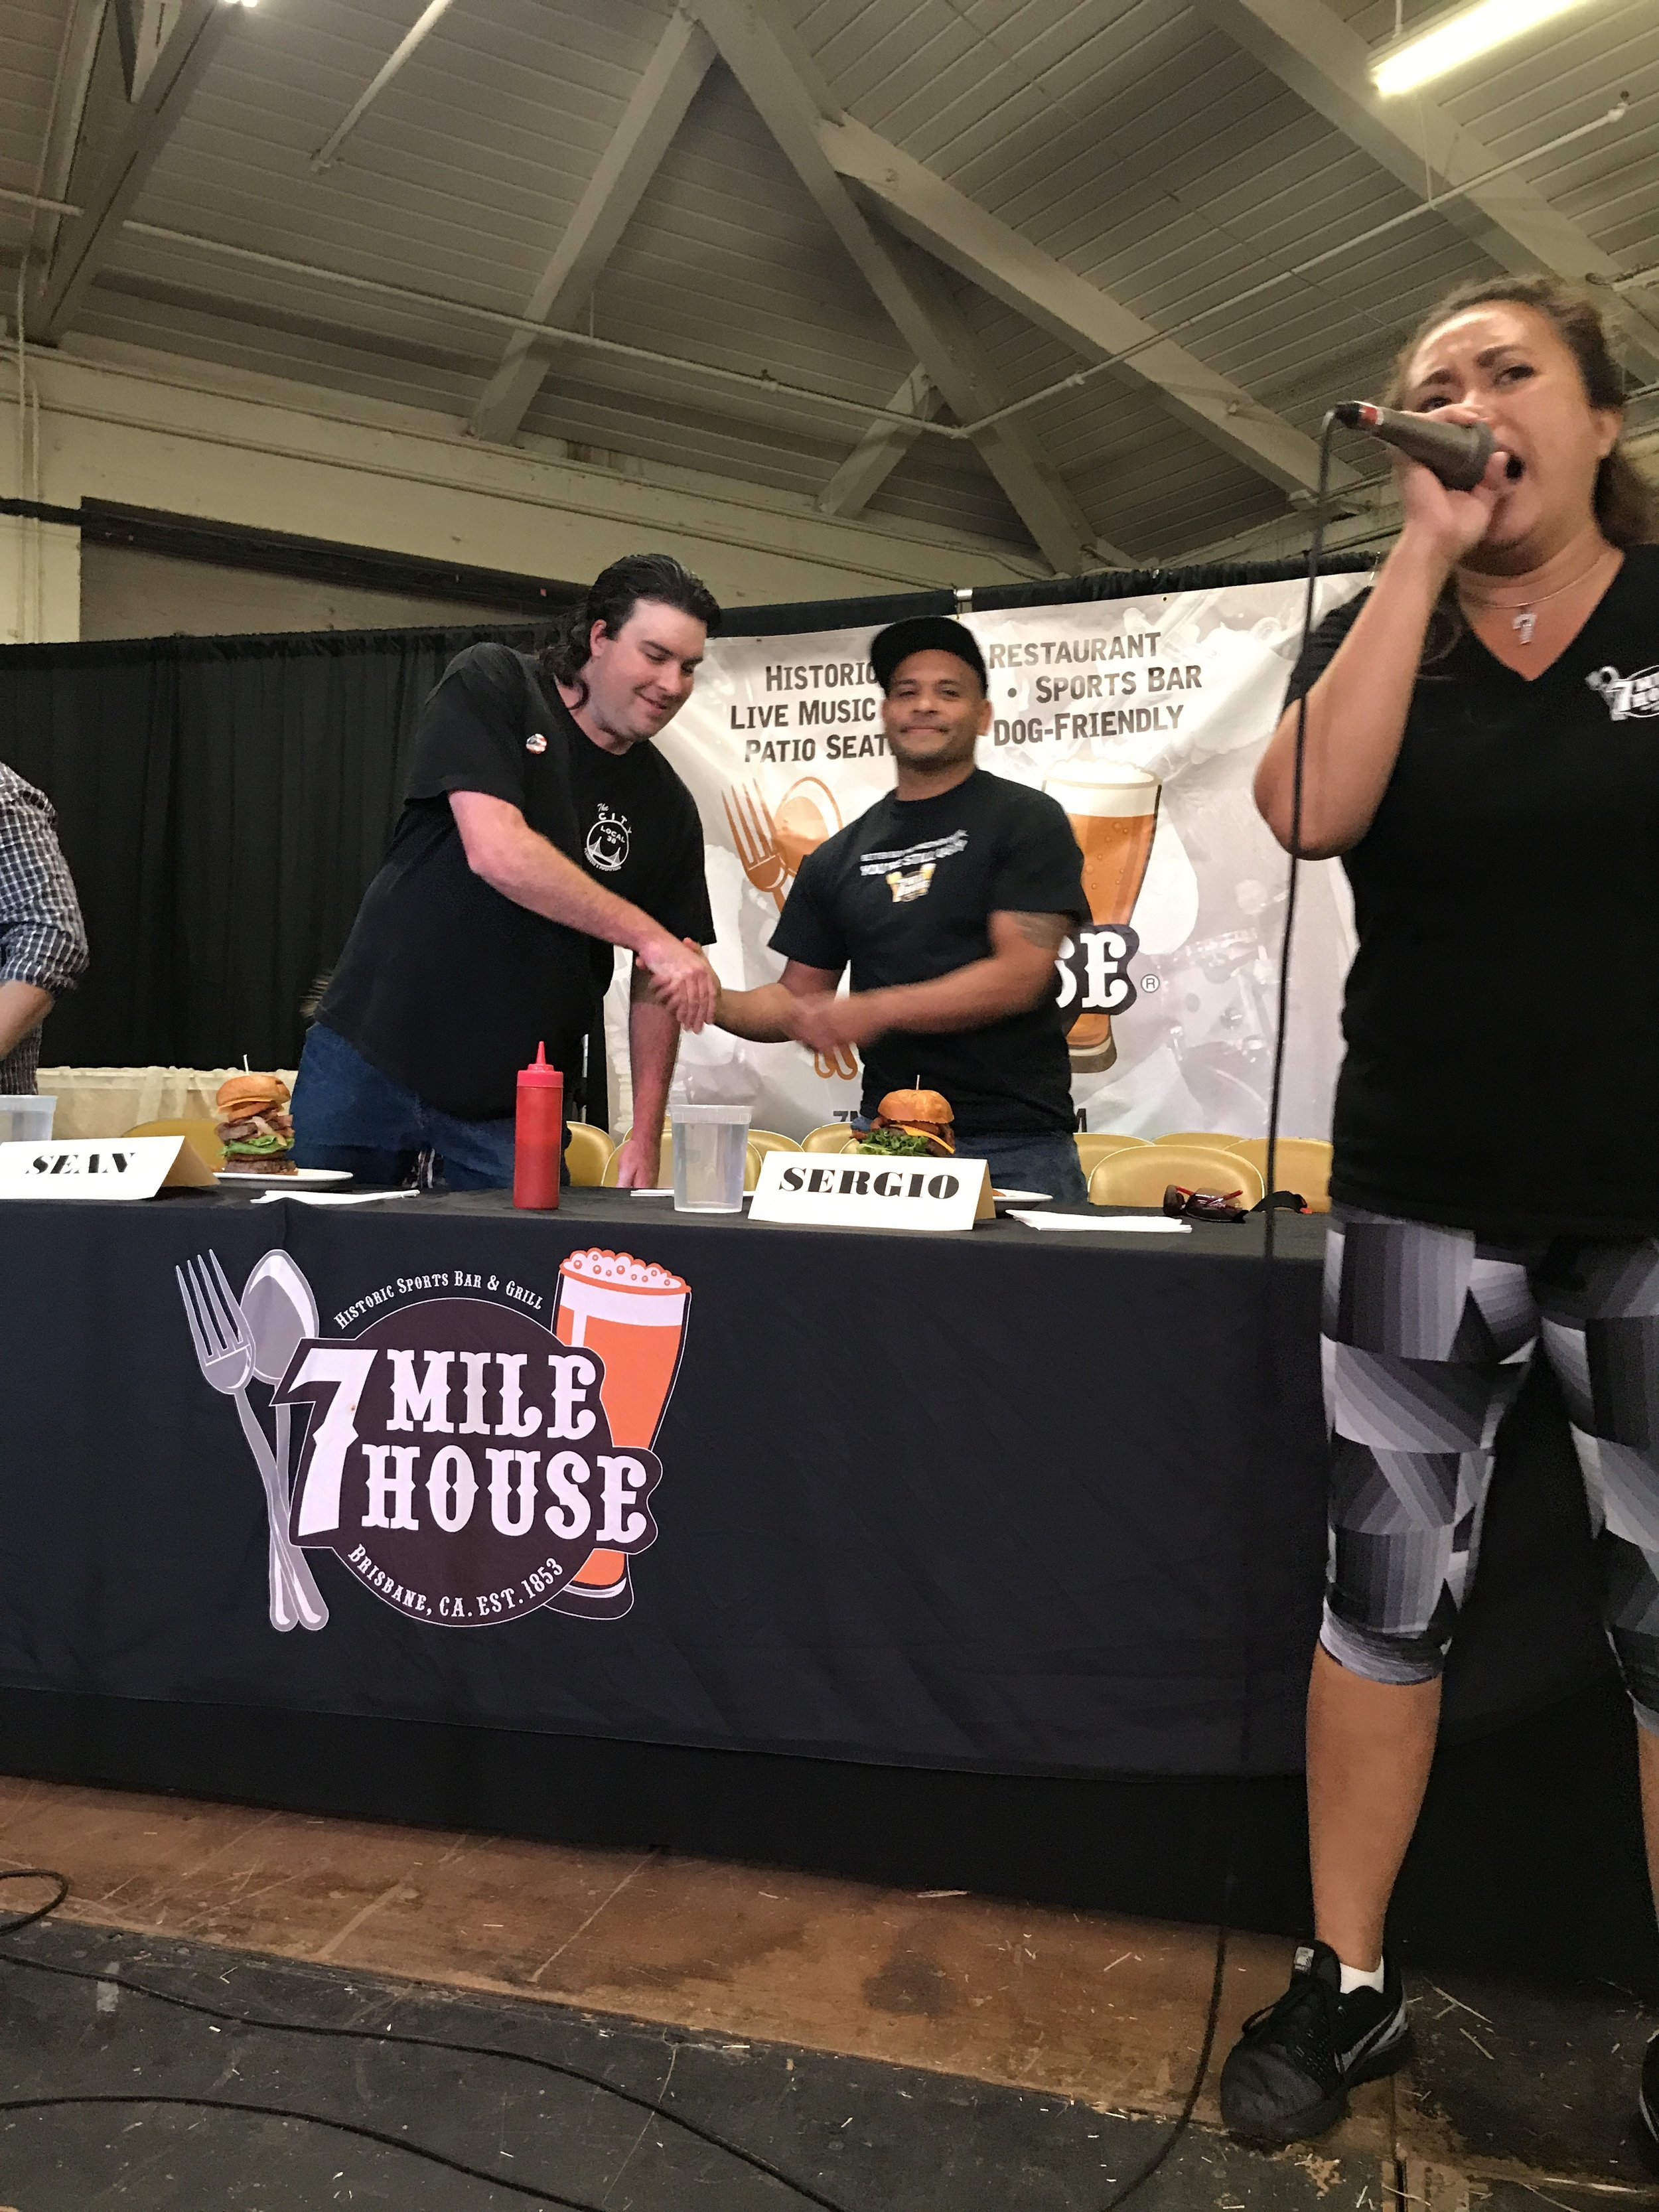 Sean shaking hands before the competition starts with Sergio Raya, last year's Cow Palace Burger King.